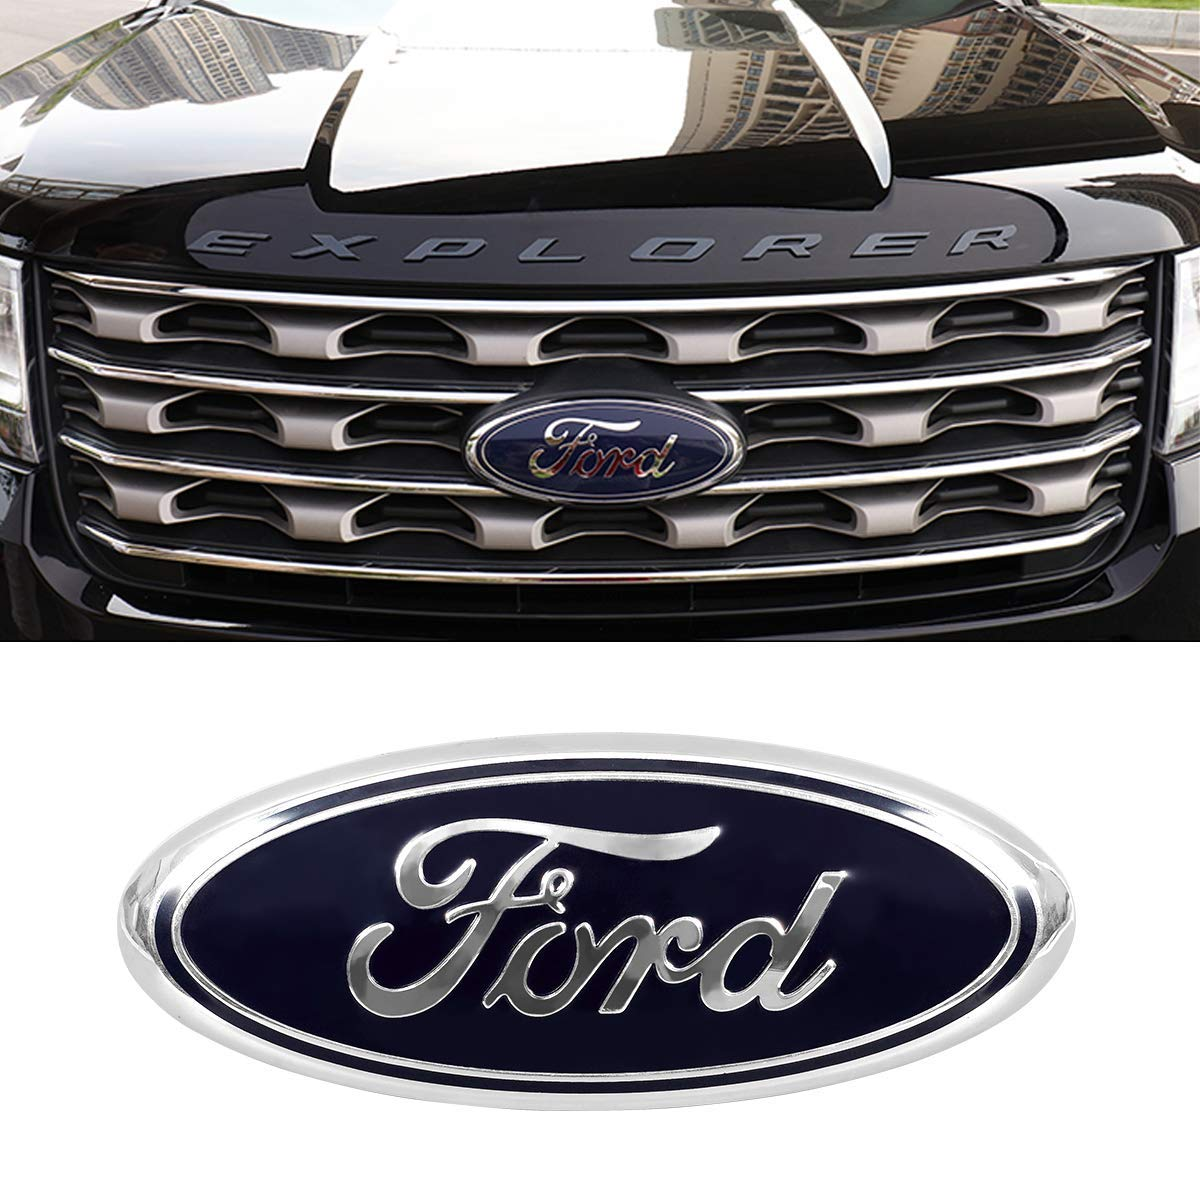 ORFORD Grille Emblem for Ford Replacement for Front Grille Emblem Badge Ford F150 Black Badge Emblem for Ford 2005-2014